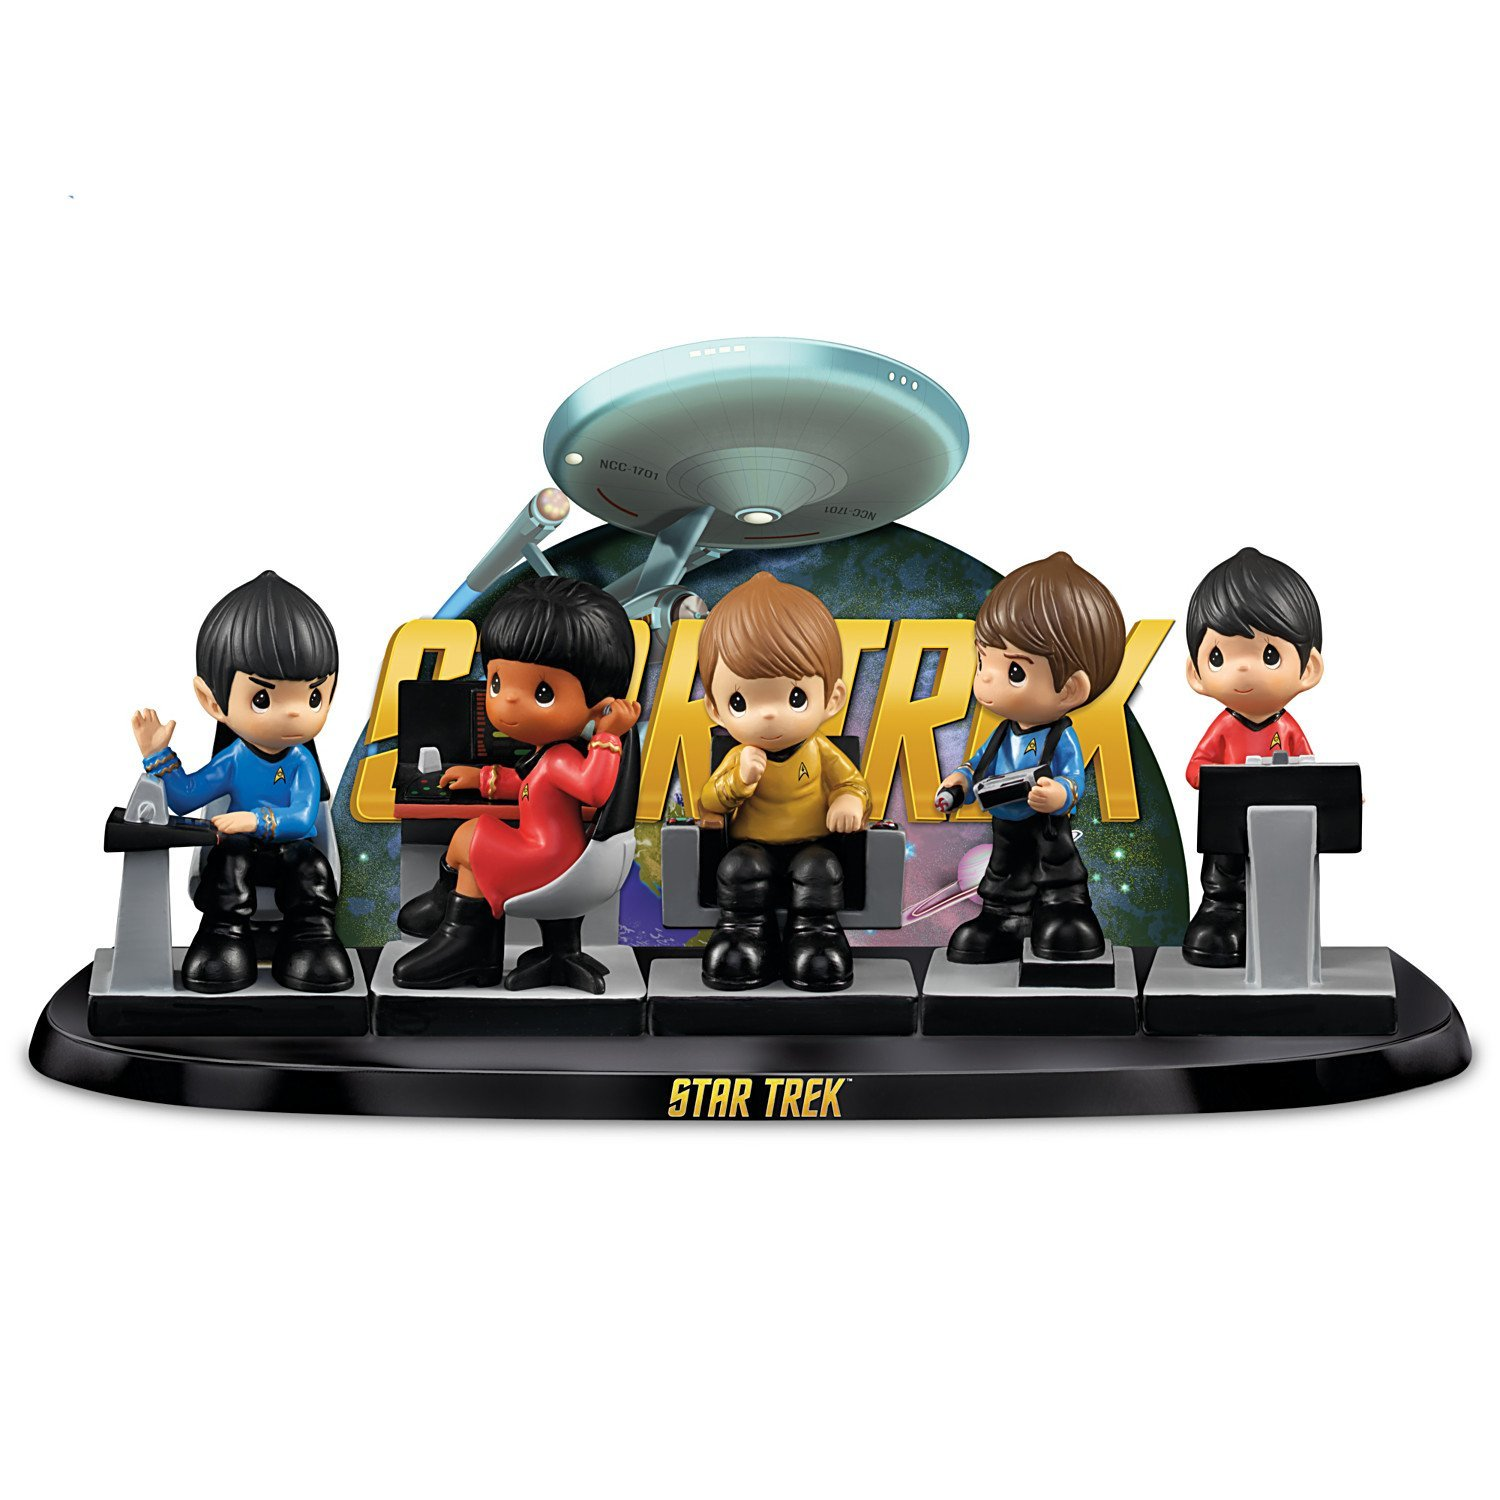 Precious Moments STAR TREK Figurine Set and Display with Starship Enterprise by The Hamilton Collection